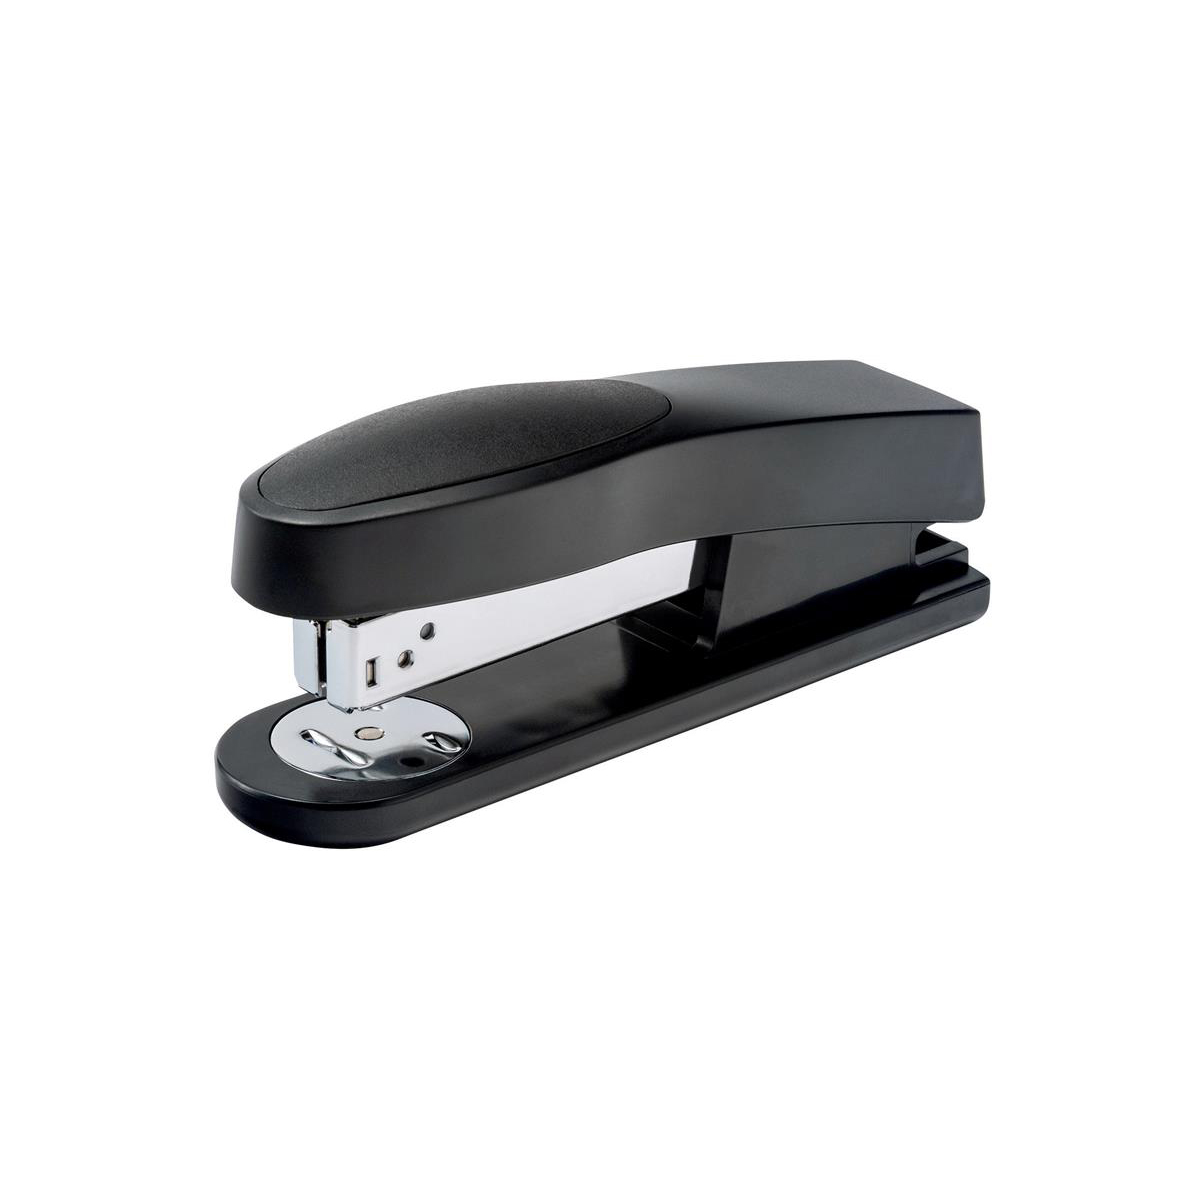 5 Star Office Half Strip Stapler Top Loading Rubber Base 25 Sheet Capacity Takes 26/6 Staples Black